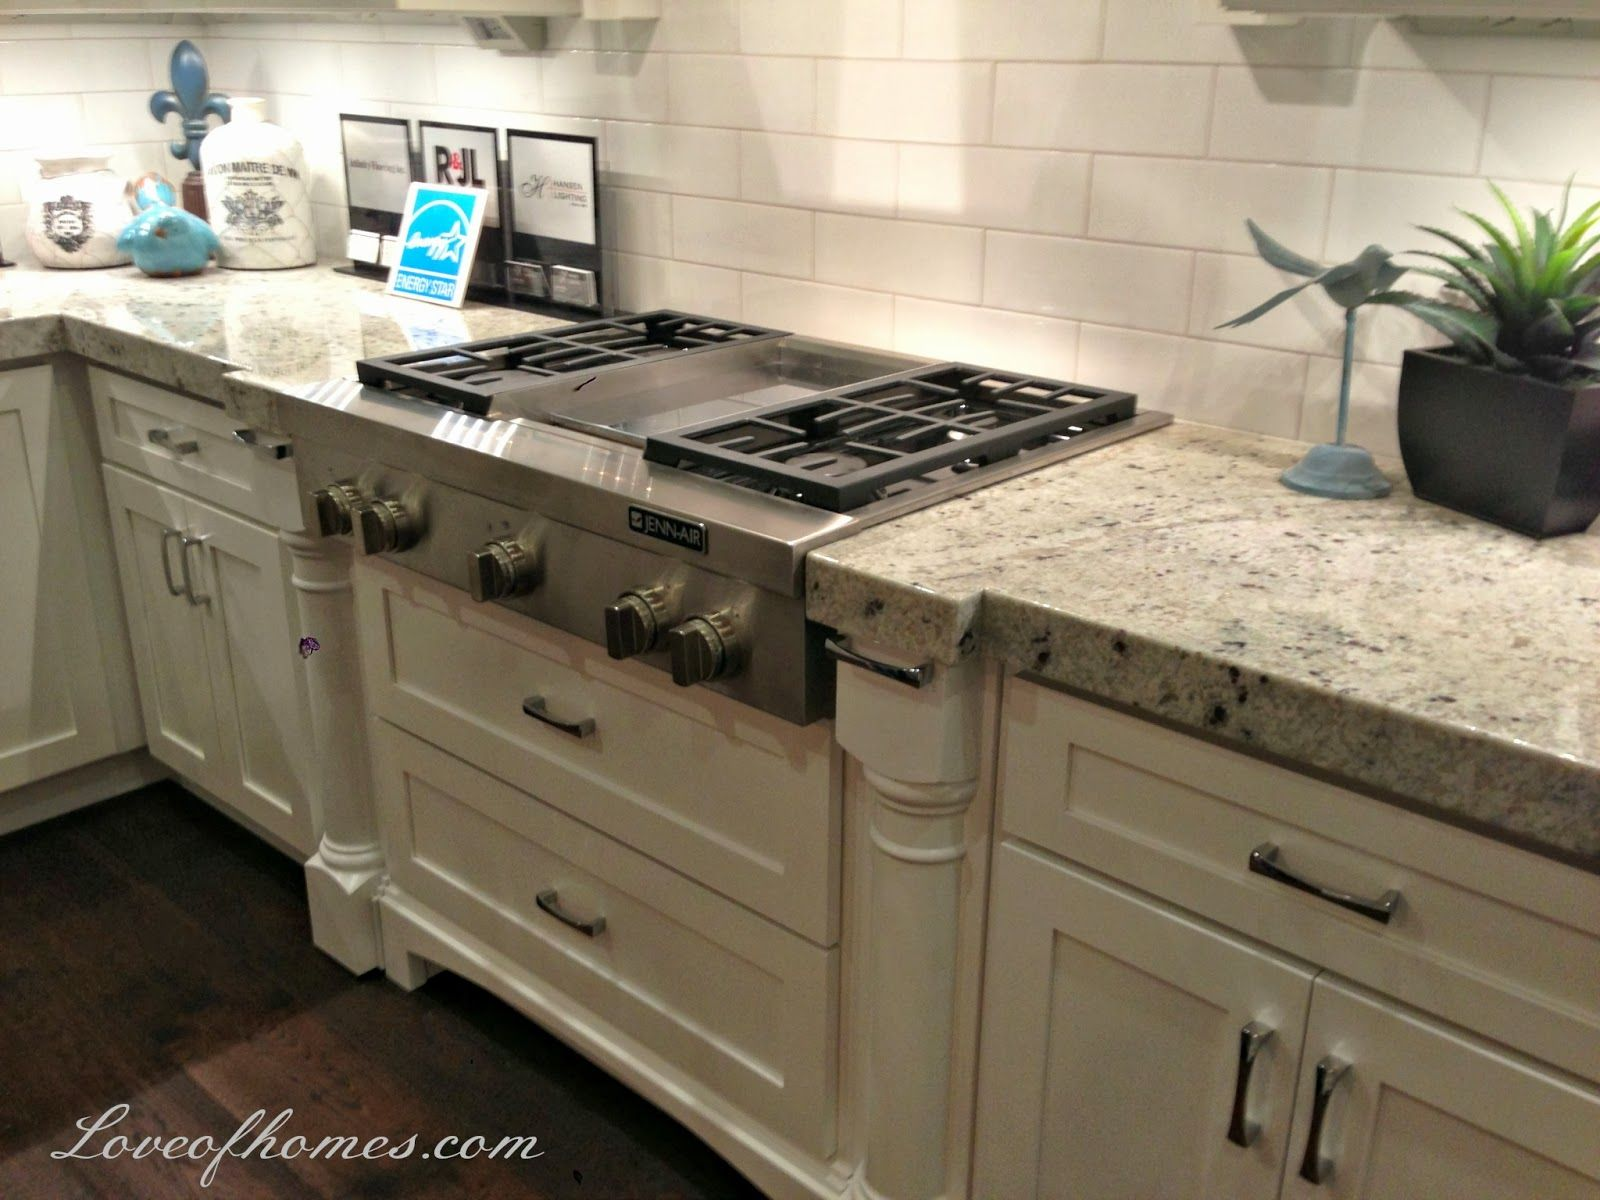 Kitchen Cabinet Decorative Legs Next To Stove Google Search Parade Of Homes Kitchen Kitchen Cabinets